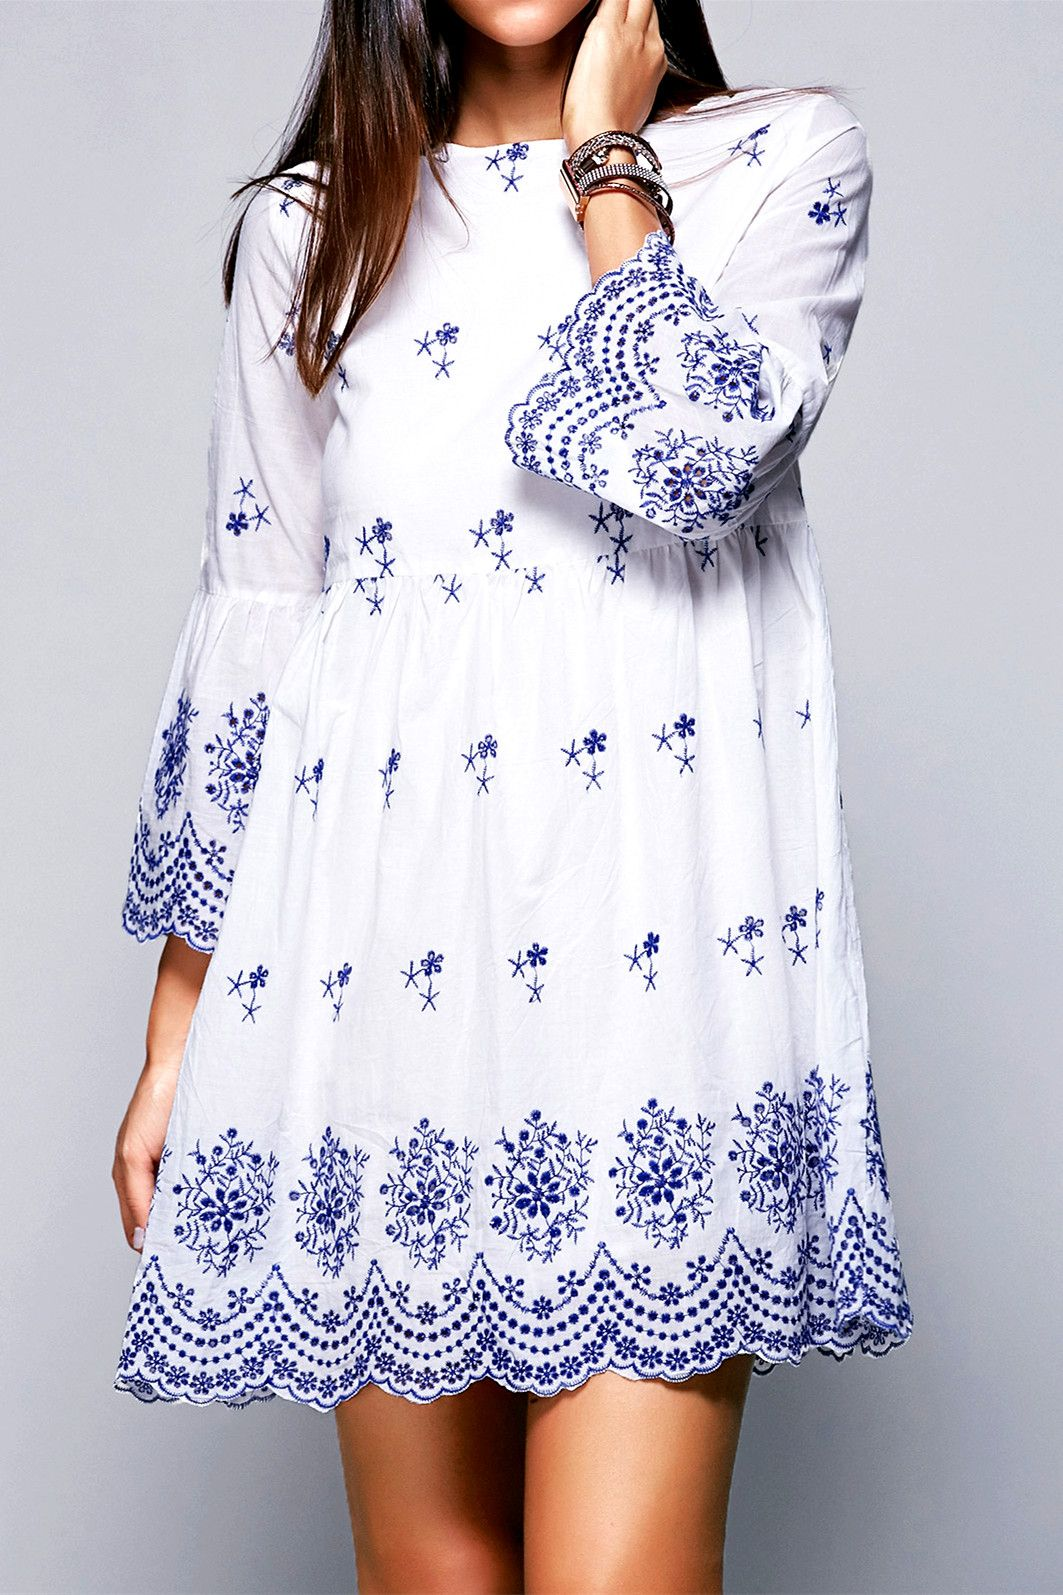 Name of sleeve styles dress